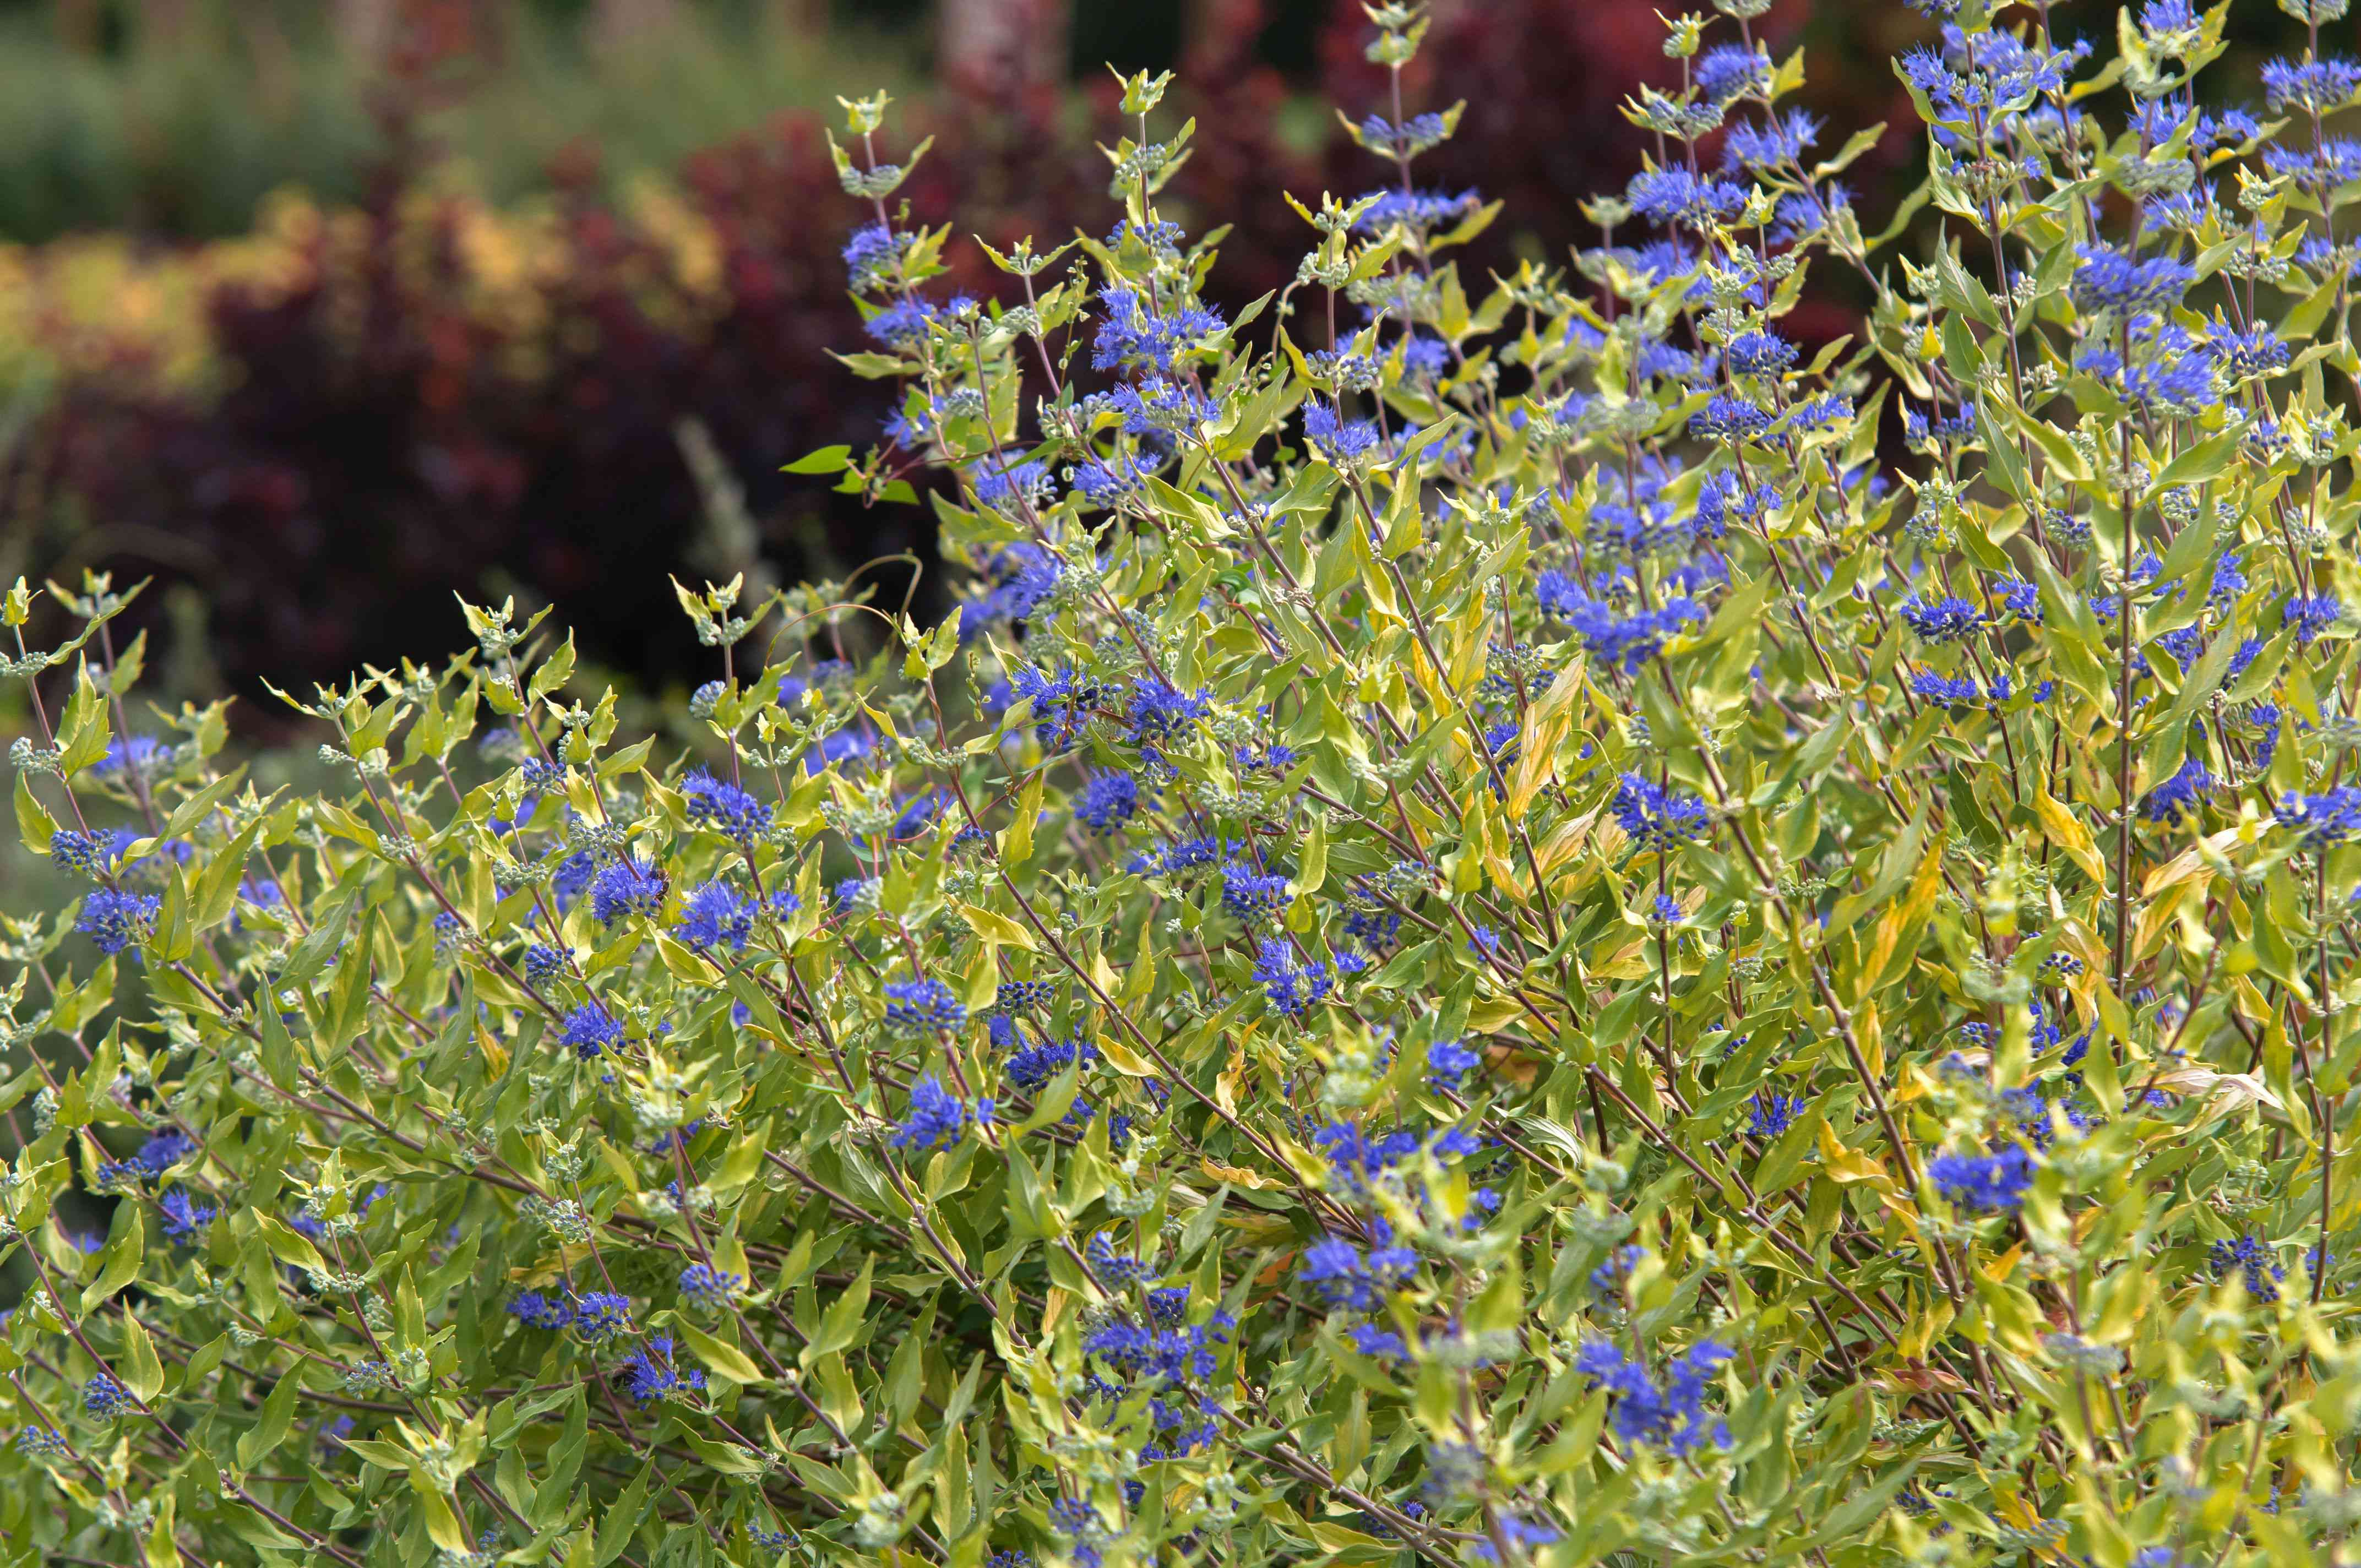 Bluebeard shrub with yellow-green leaves on stems and small blue flowers on thin stems